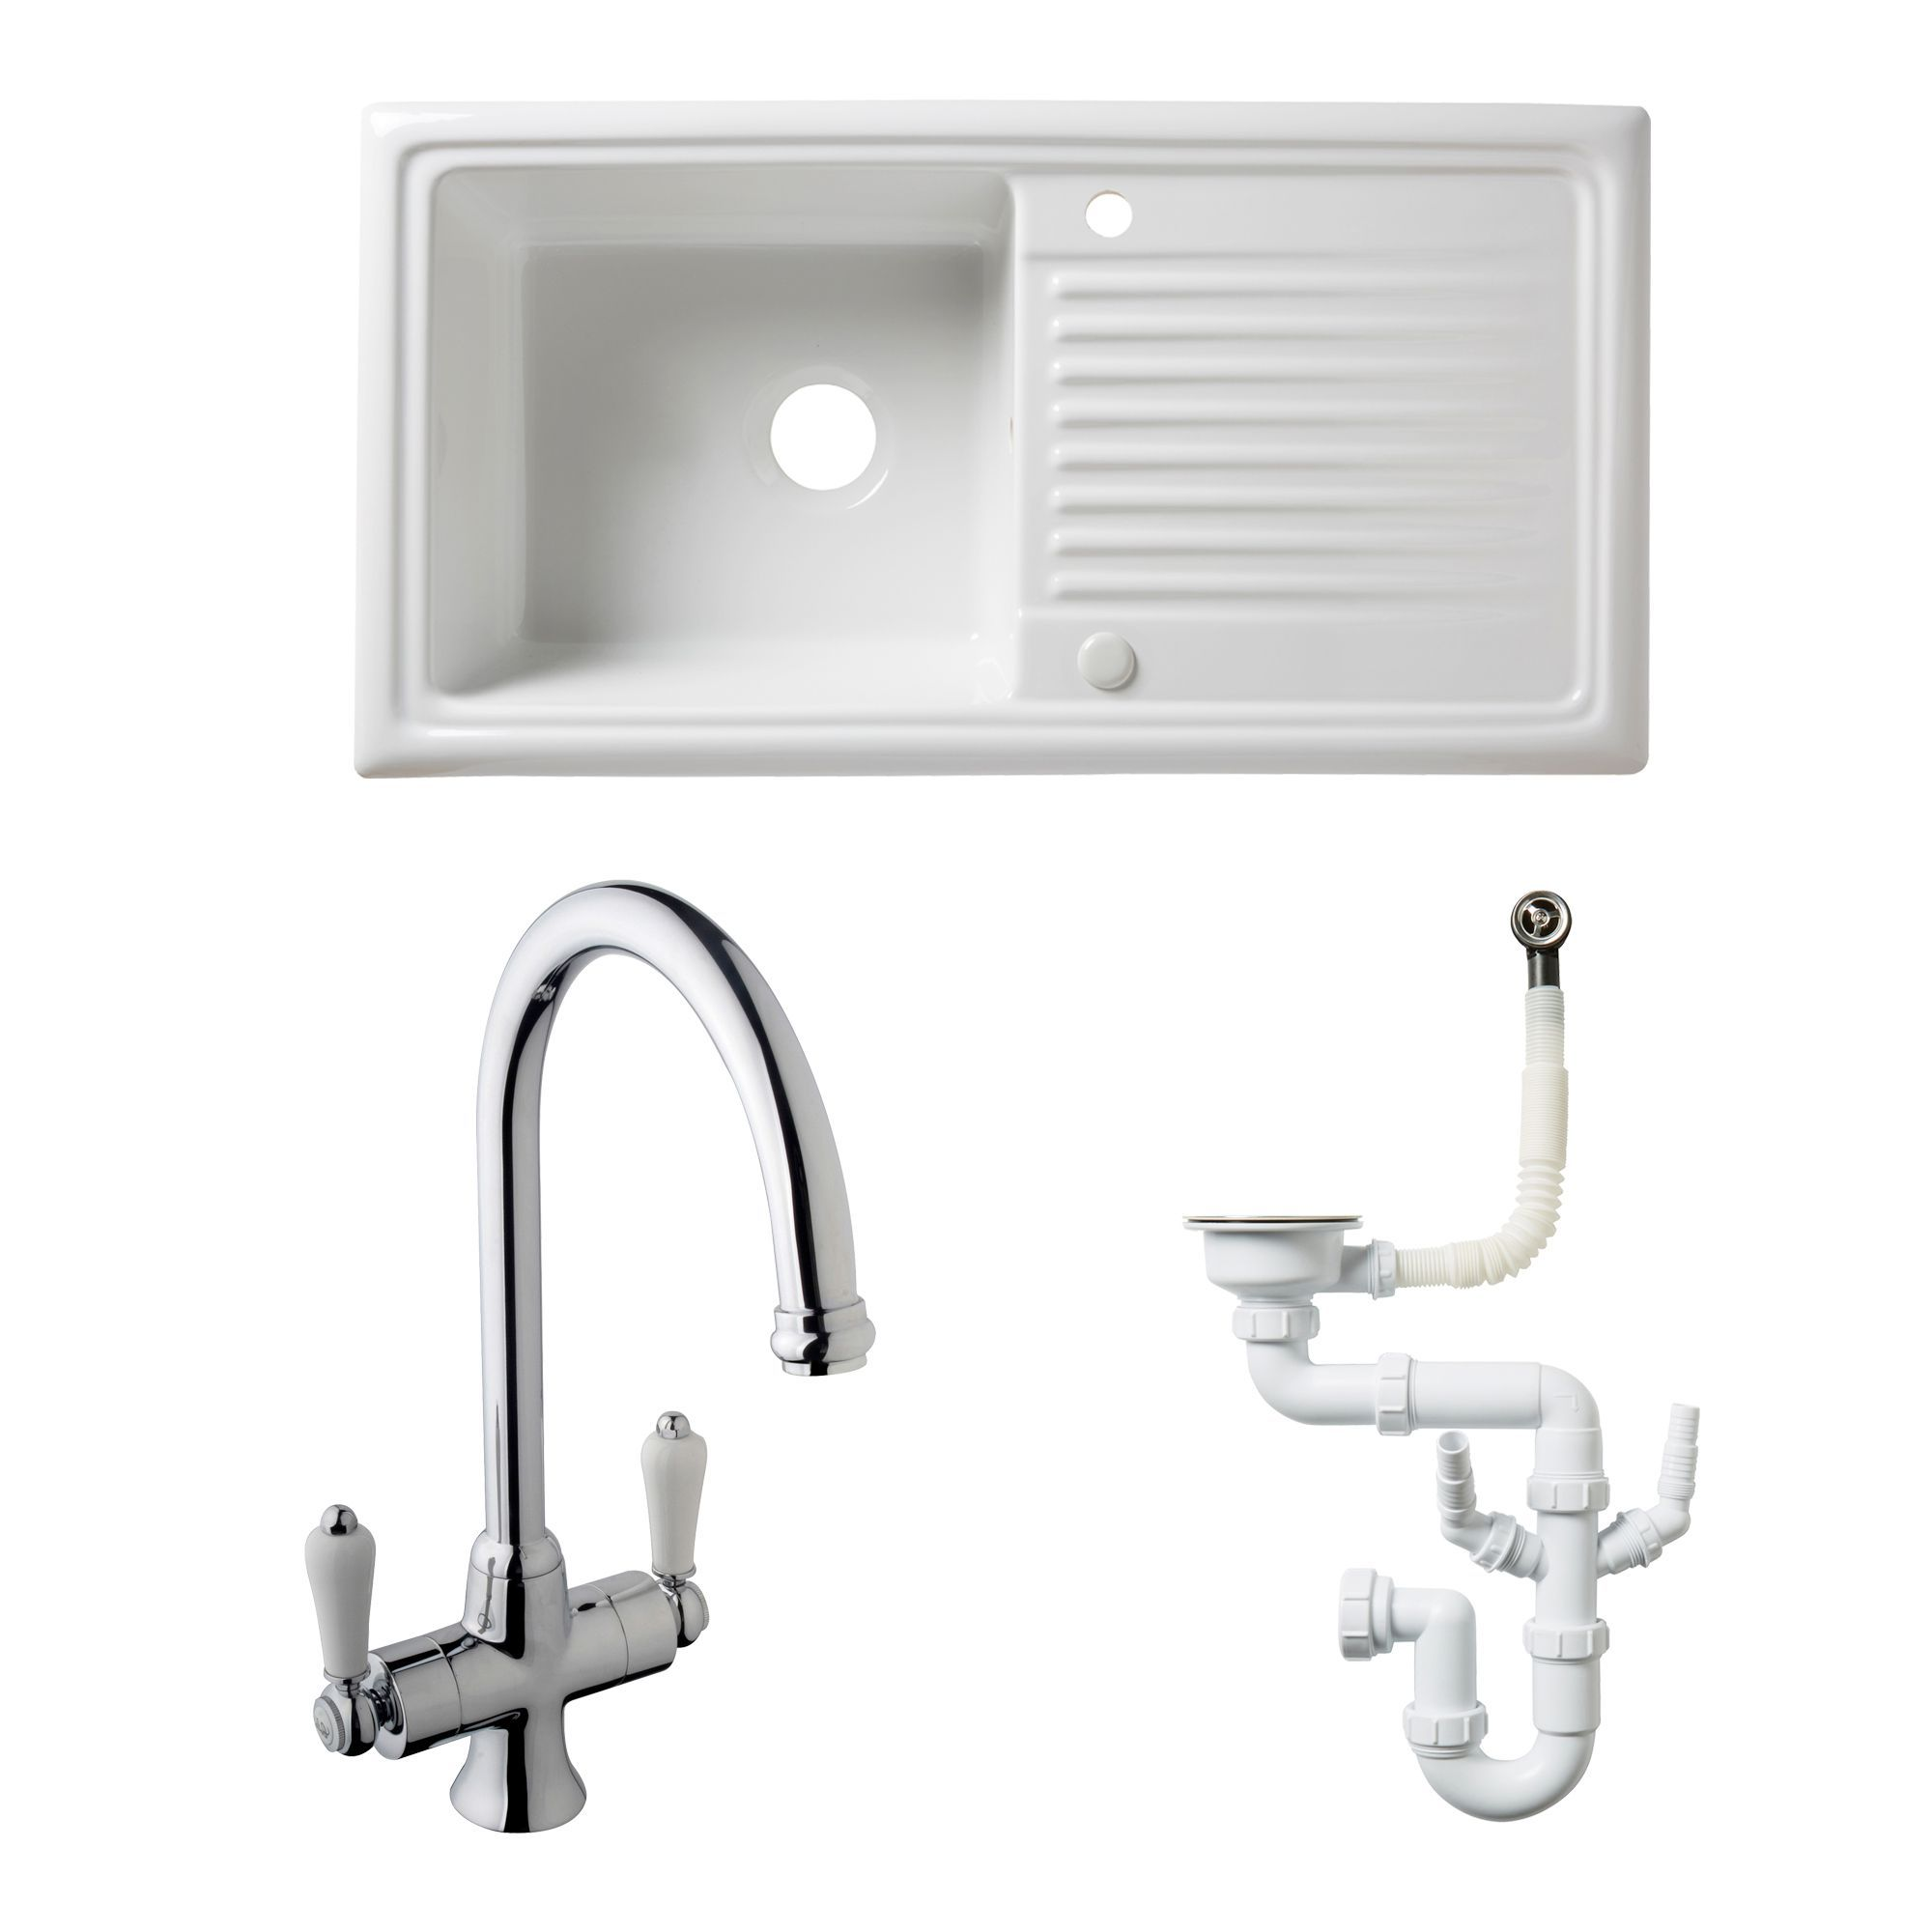 Cooke And Lewis Kitchen Sinks Cooke lewis 1 bowl white ceramic sinktap waste kit cooke lewis 1 bowl white ceramic sink tap waste kit departments diy at bq workwithnaturefo